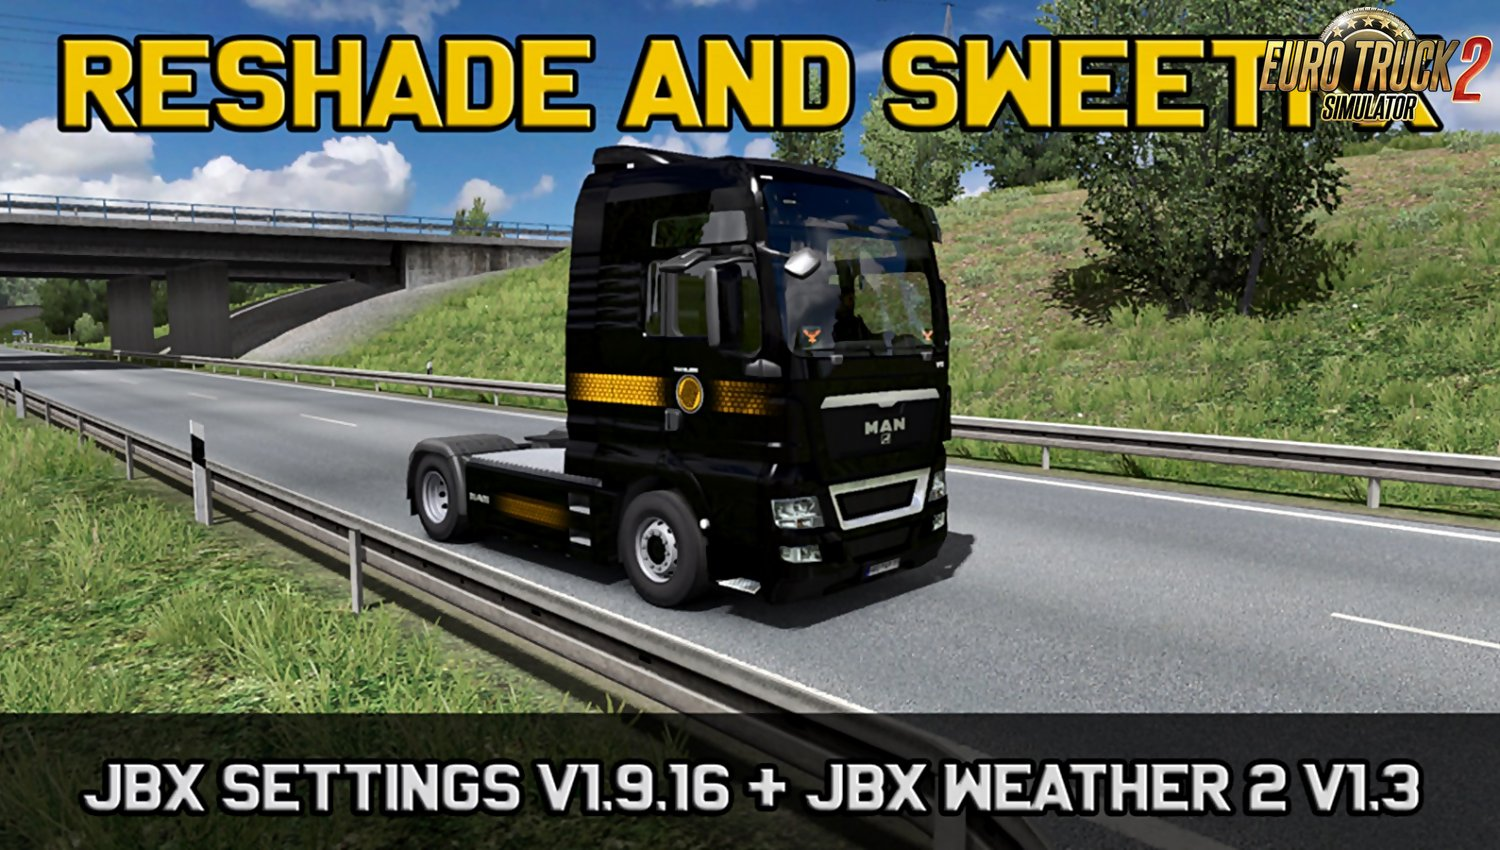 JBX Settings v 1.9.16 Reshade and SweetFX for Ets2